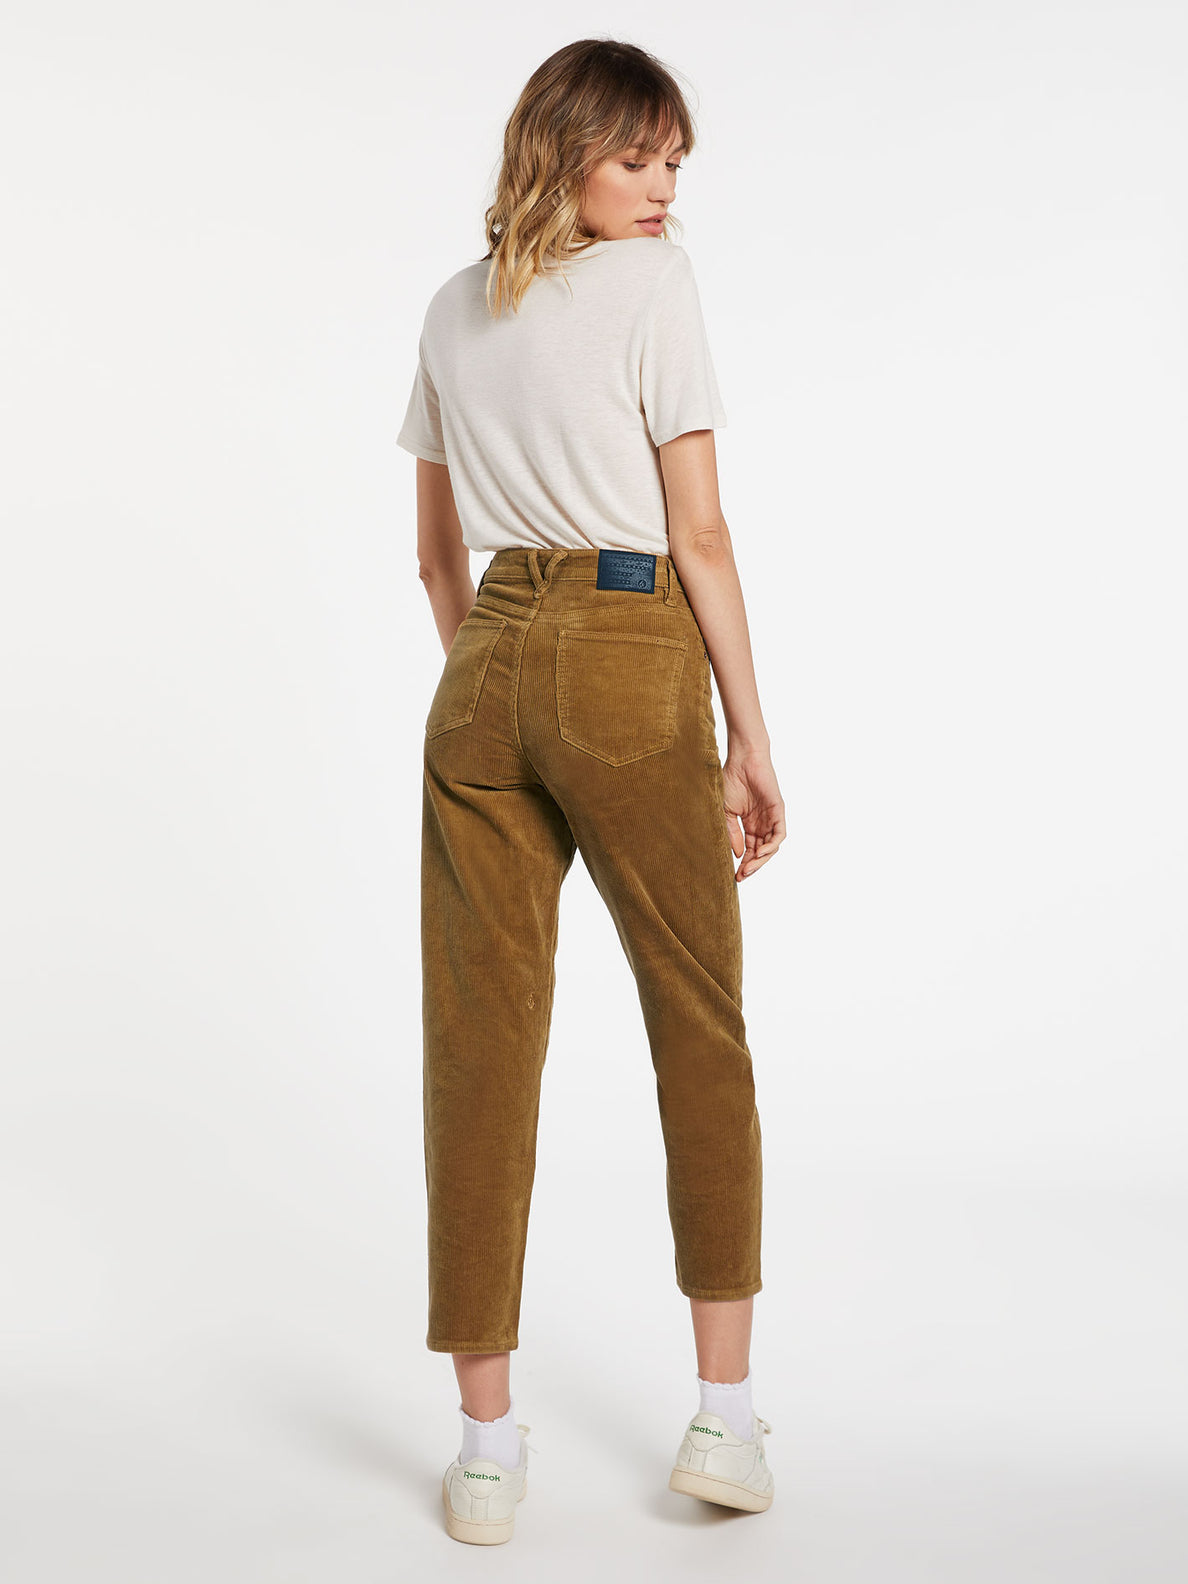 Stoney Overall Vintage Gold (B1932003_VGD) [B]